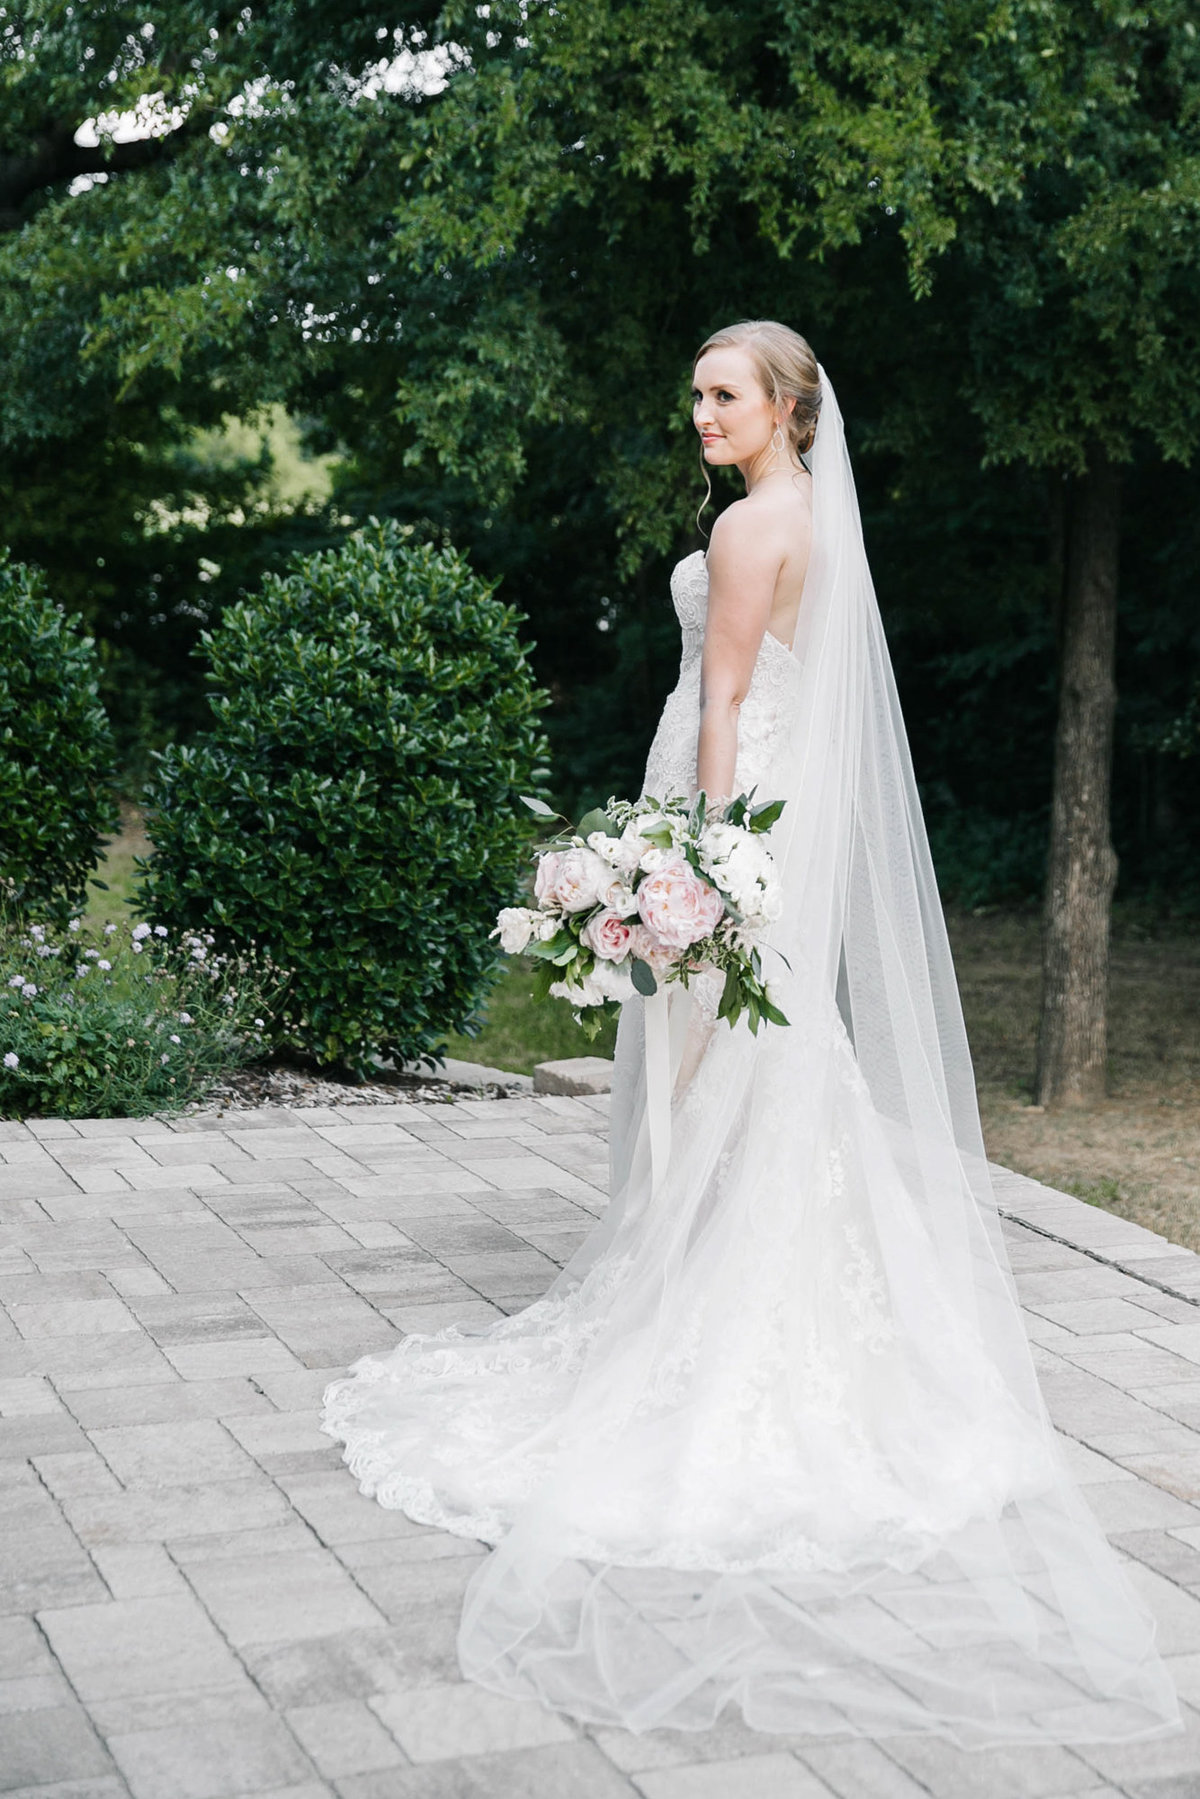 Aristide-Flower-Mound-wedding-by-Dallas-photographer-Julia-Sharapova-545